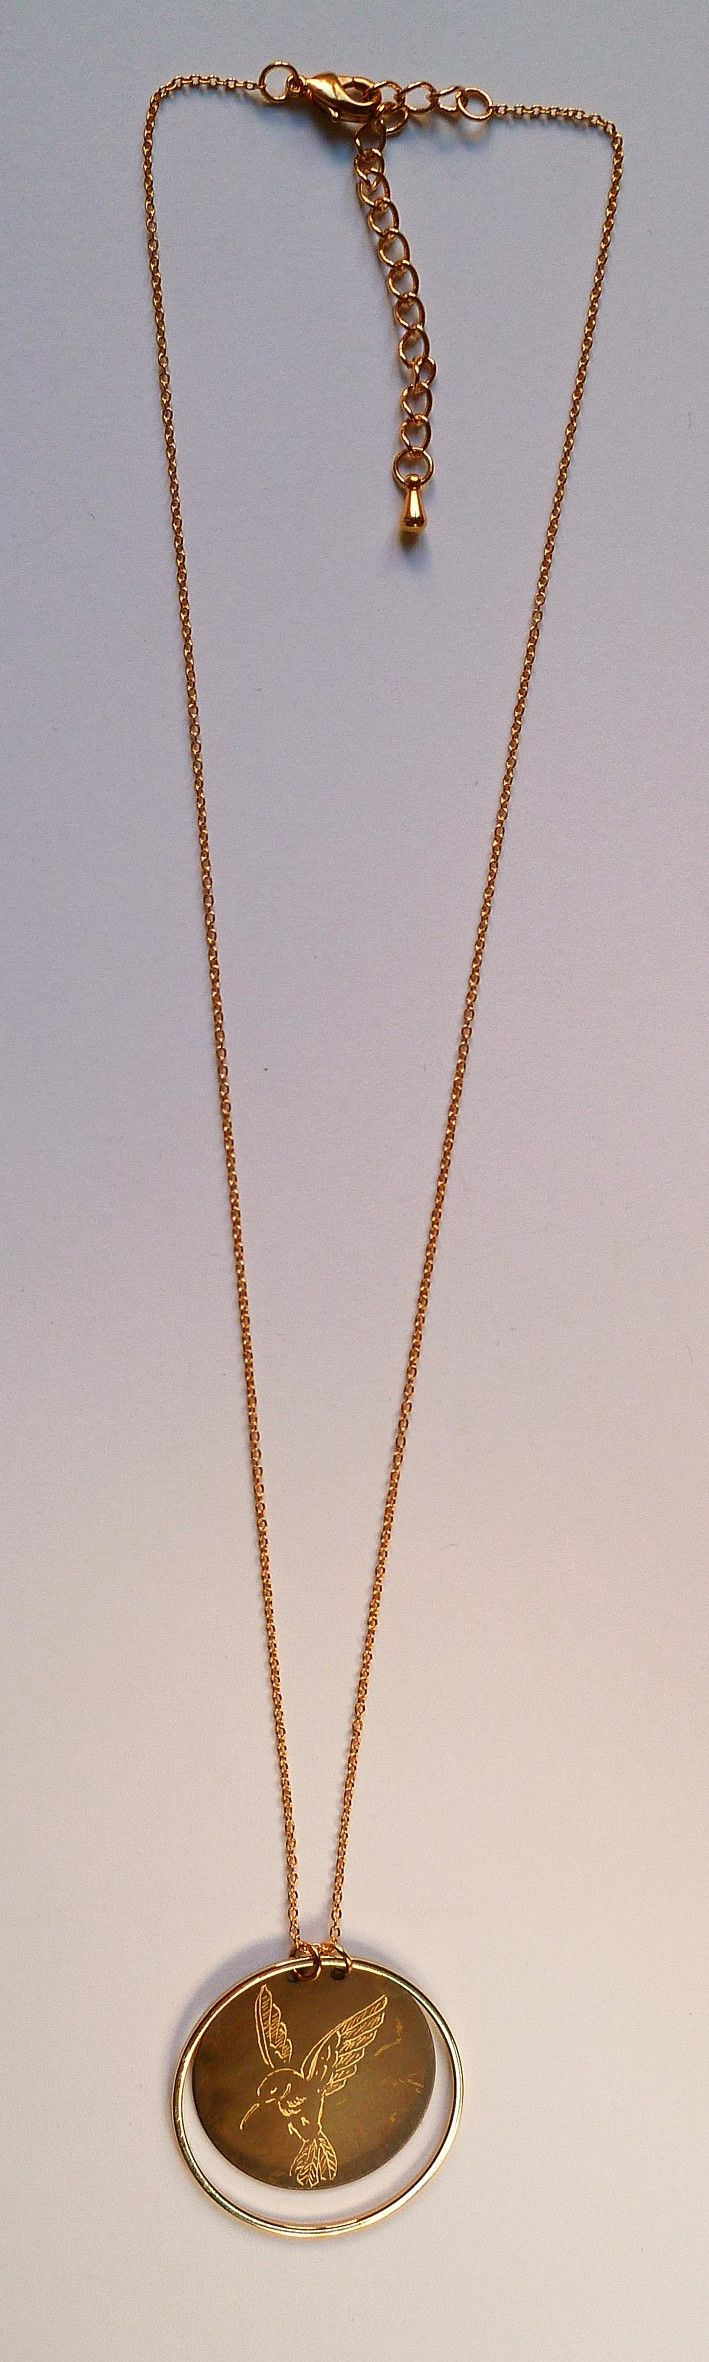 Collier rond.